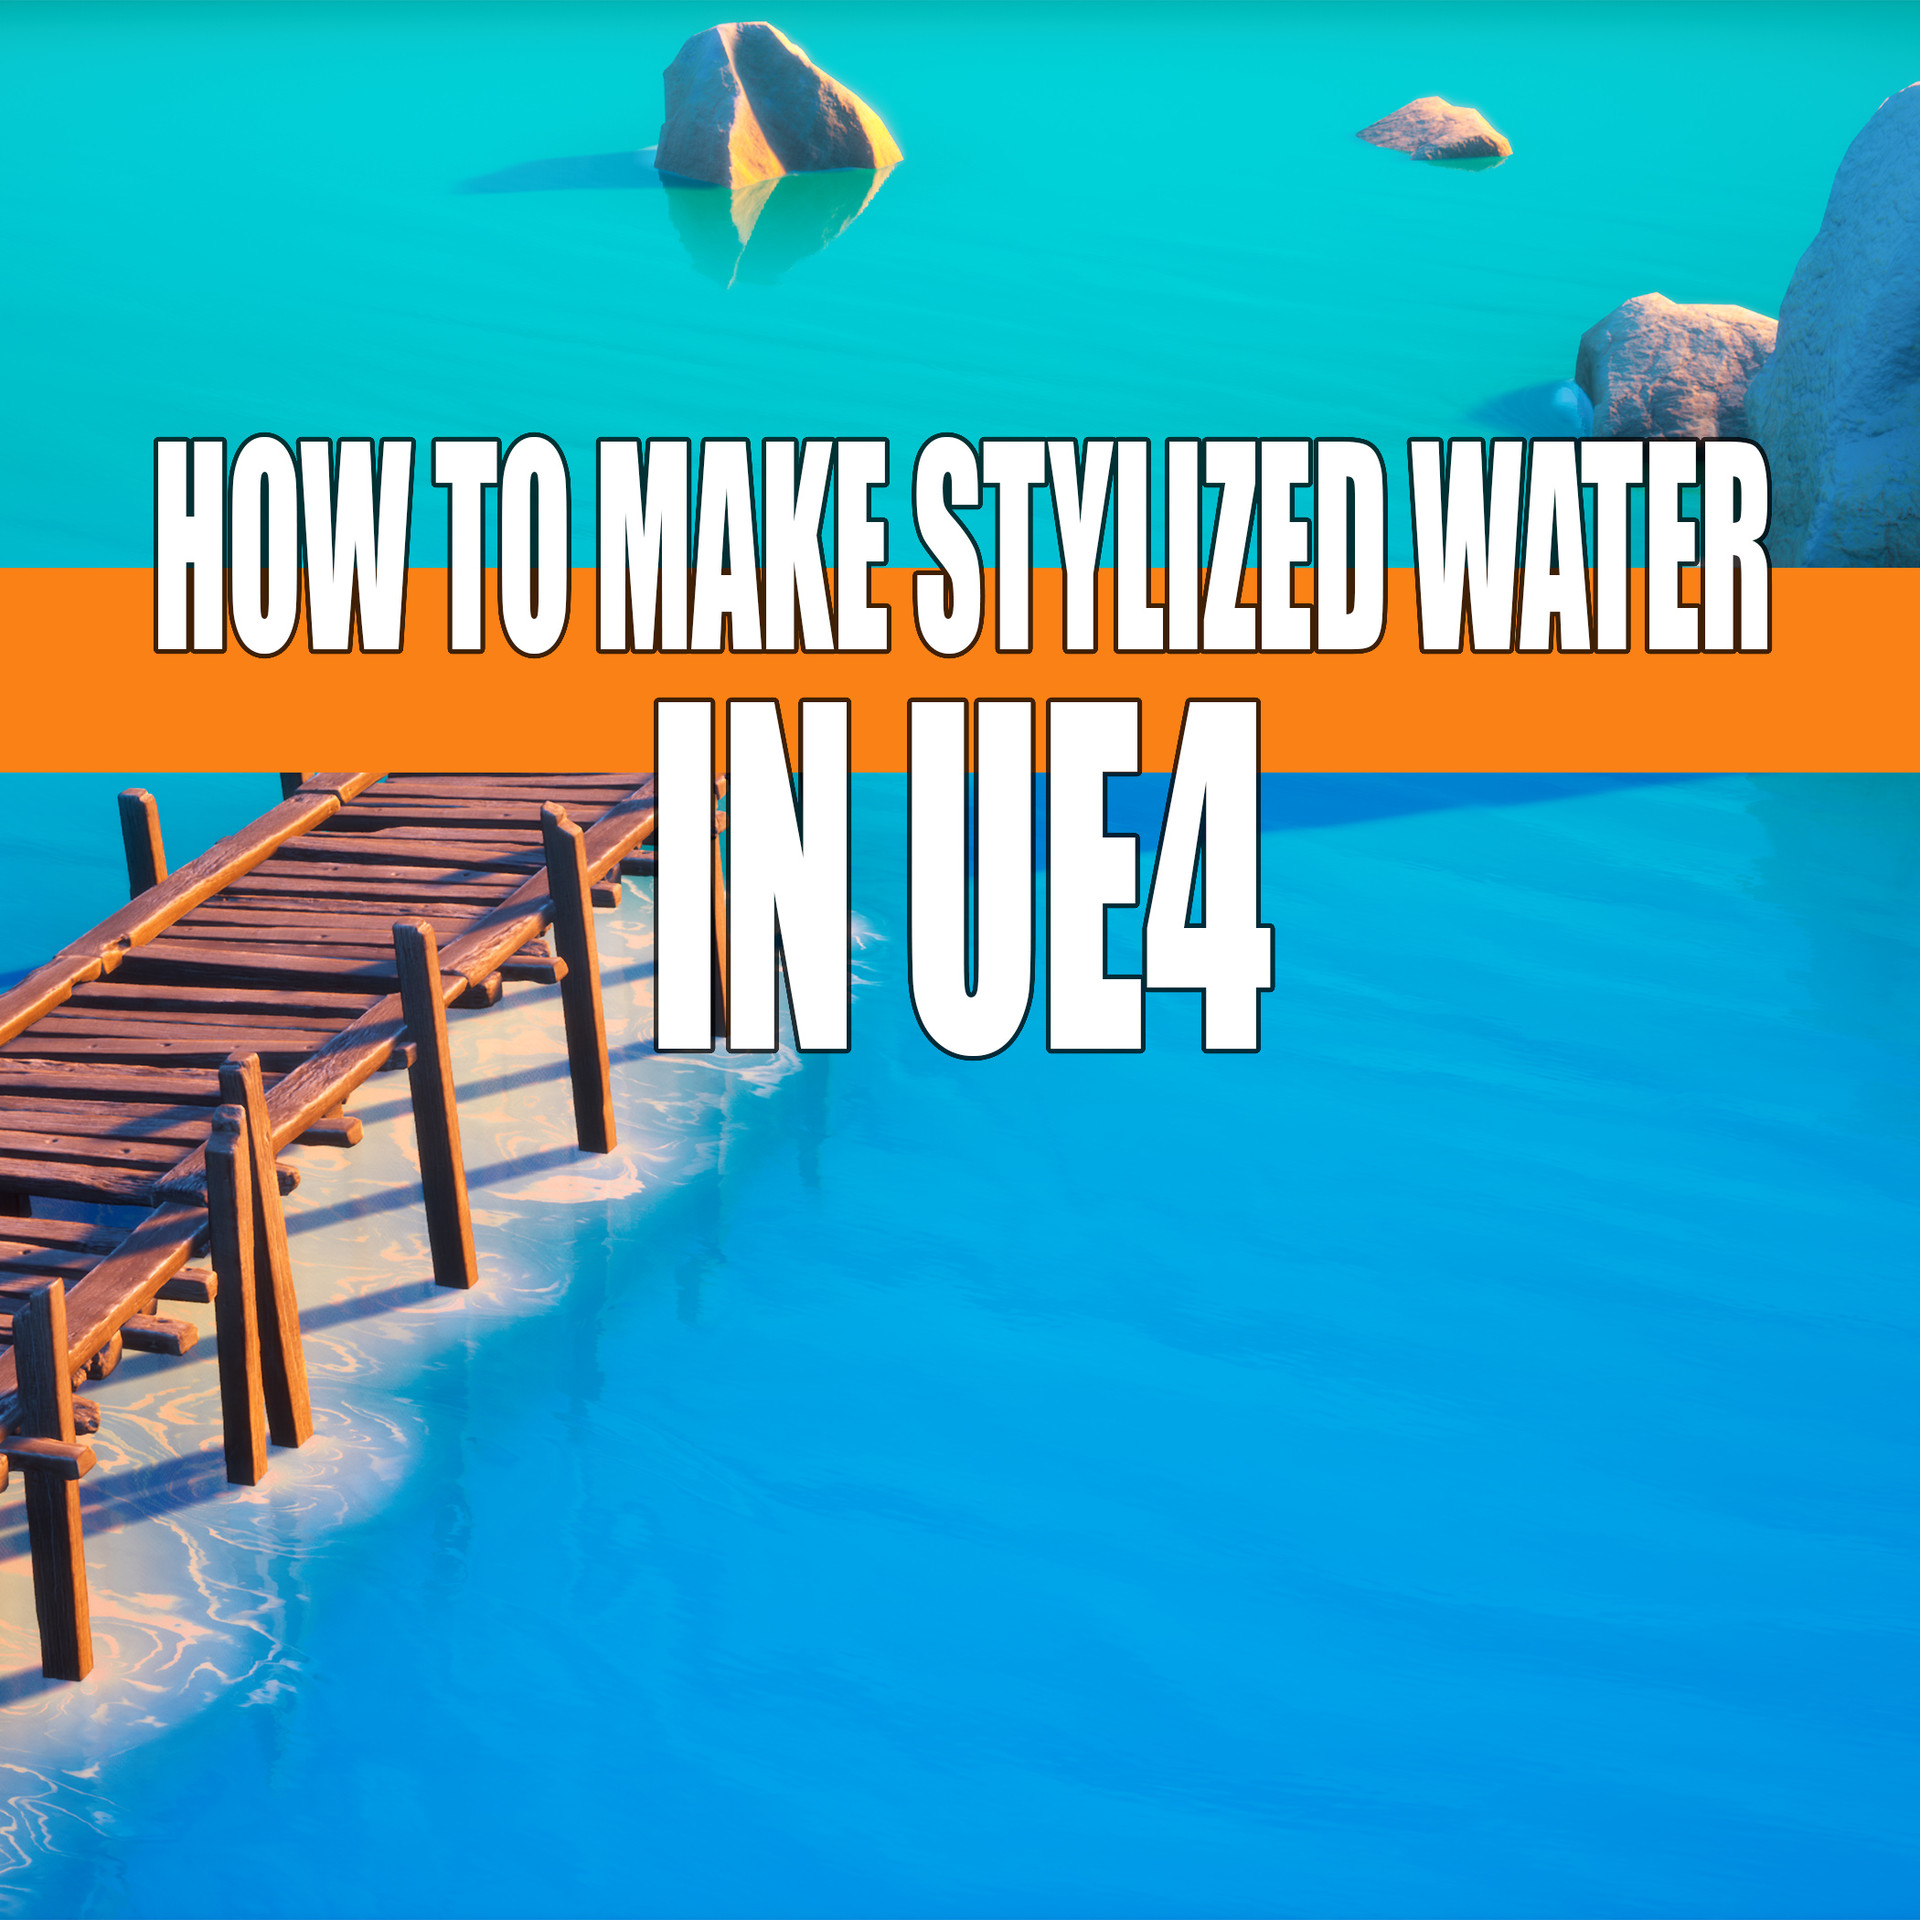 ArtStation - How to Make Stylized Water In UE4 with Project